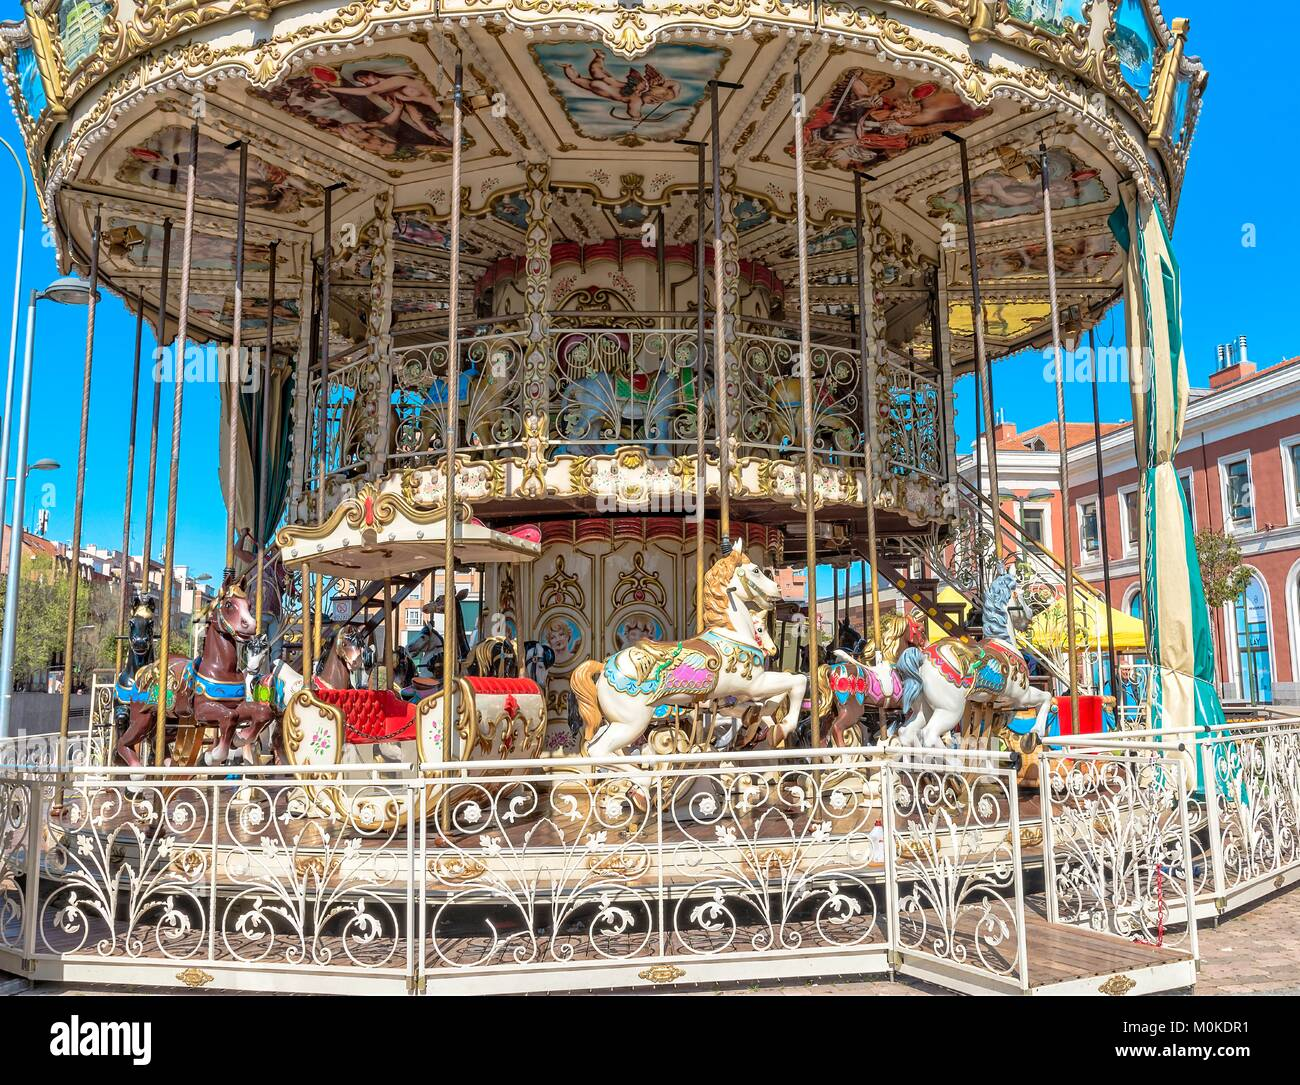 Carousel in Madrid, Spain.  A colourful and pretty carousel situated outside a station in Madrid. Stock Photo